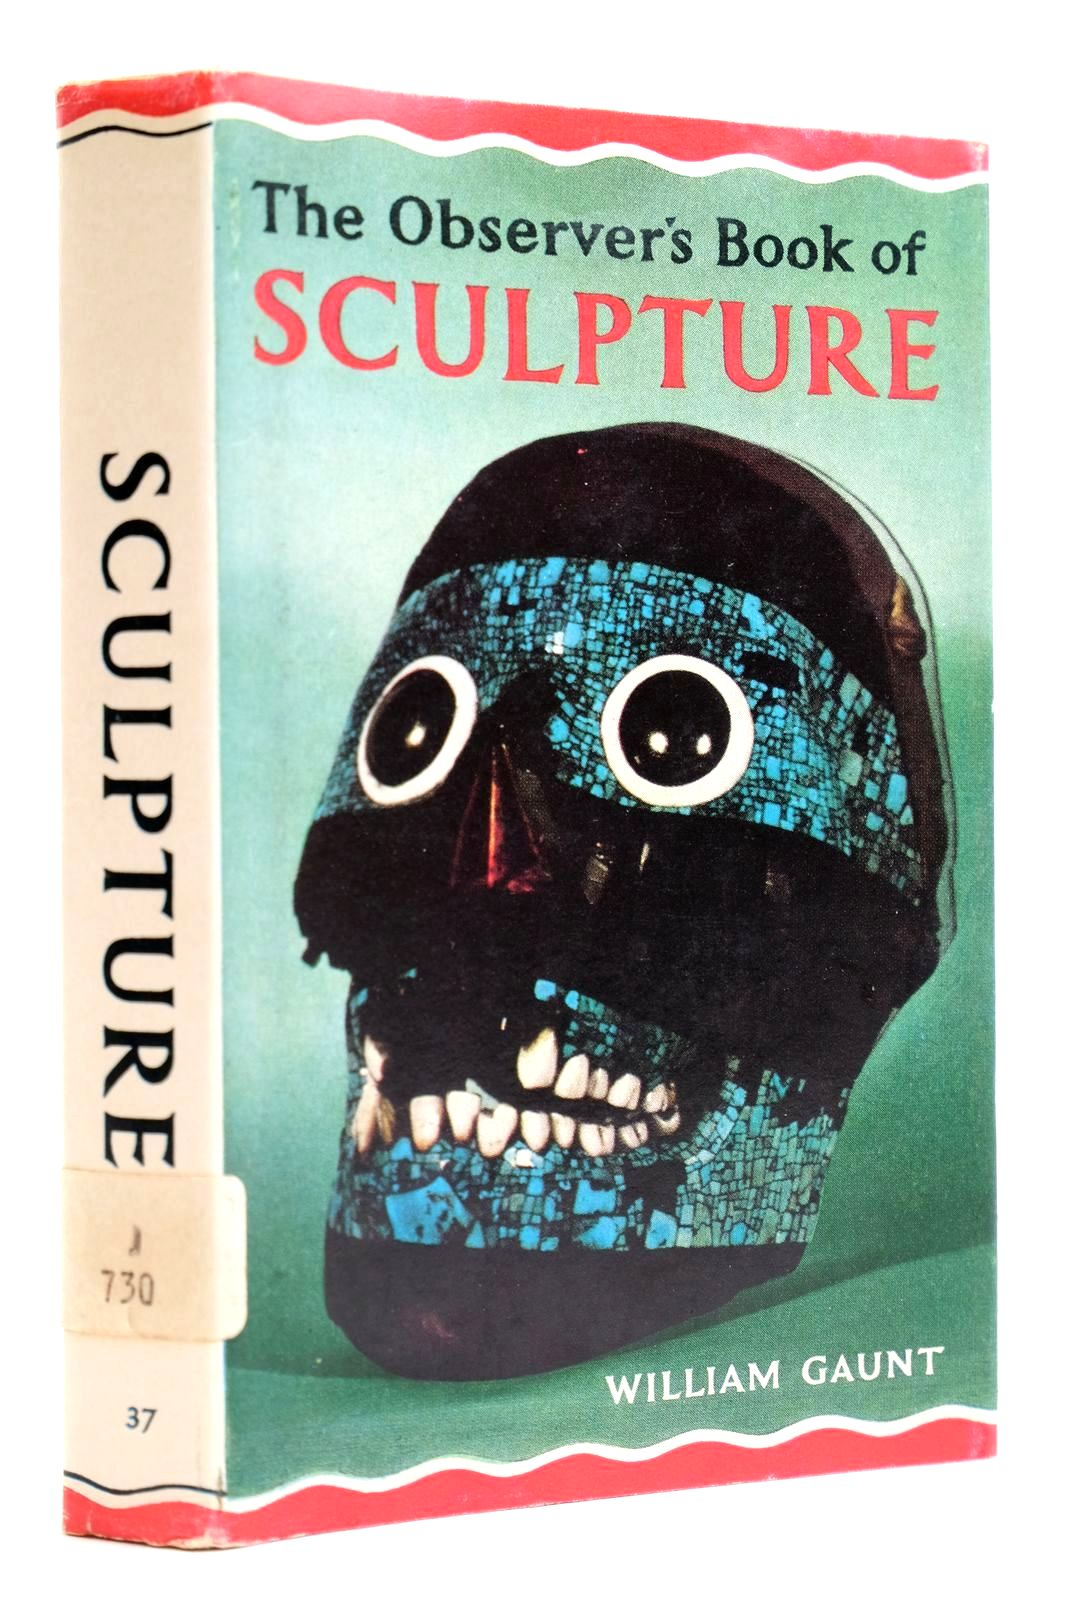 Photo of THE OBSERVER'S BOOK OF SCULPTURE written by Gaunt, William published by Frederick Warne & Co Ltd. (STOCK CODE: 2132050)  for sale by Stella & Rose's Books